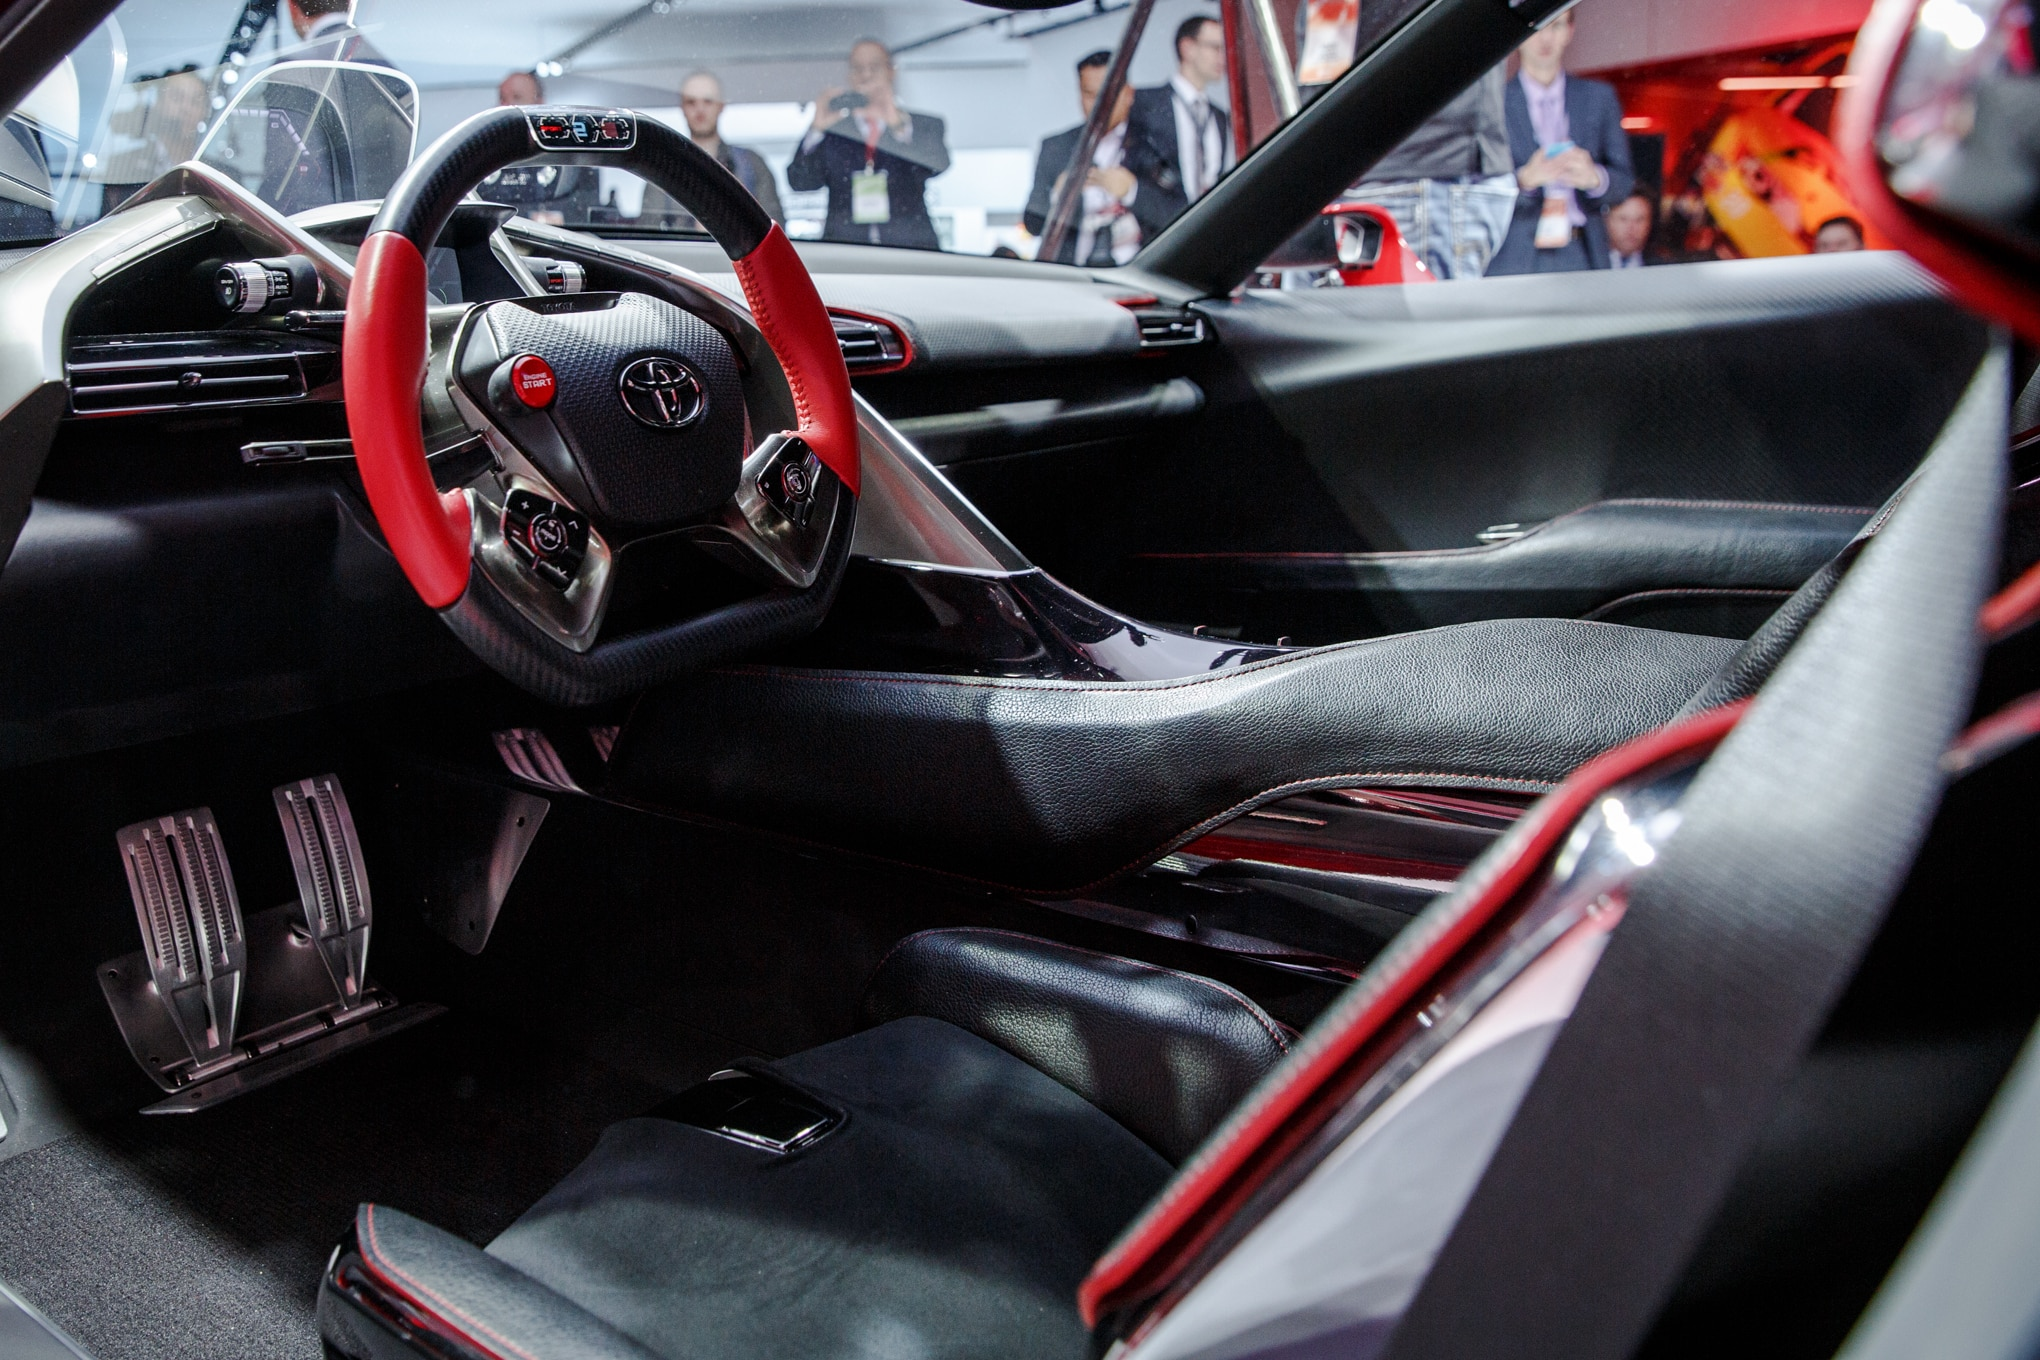 2018 Toyota Ft1 >> Toyota Supra Interior 2014 | www.pixshark.com - Images Galleries With A Bite!